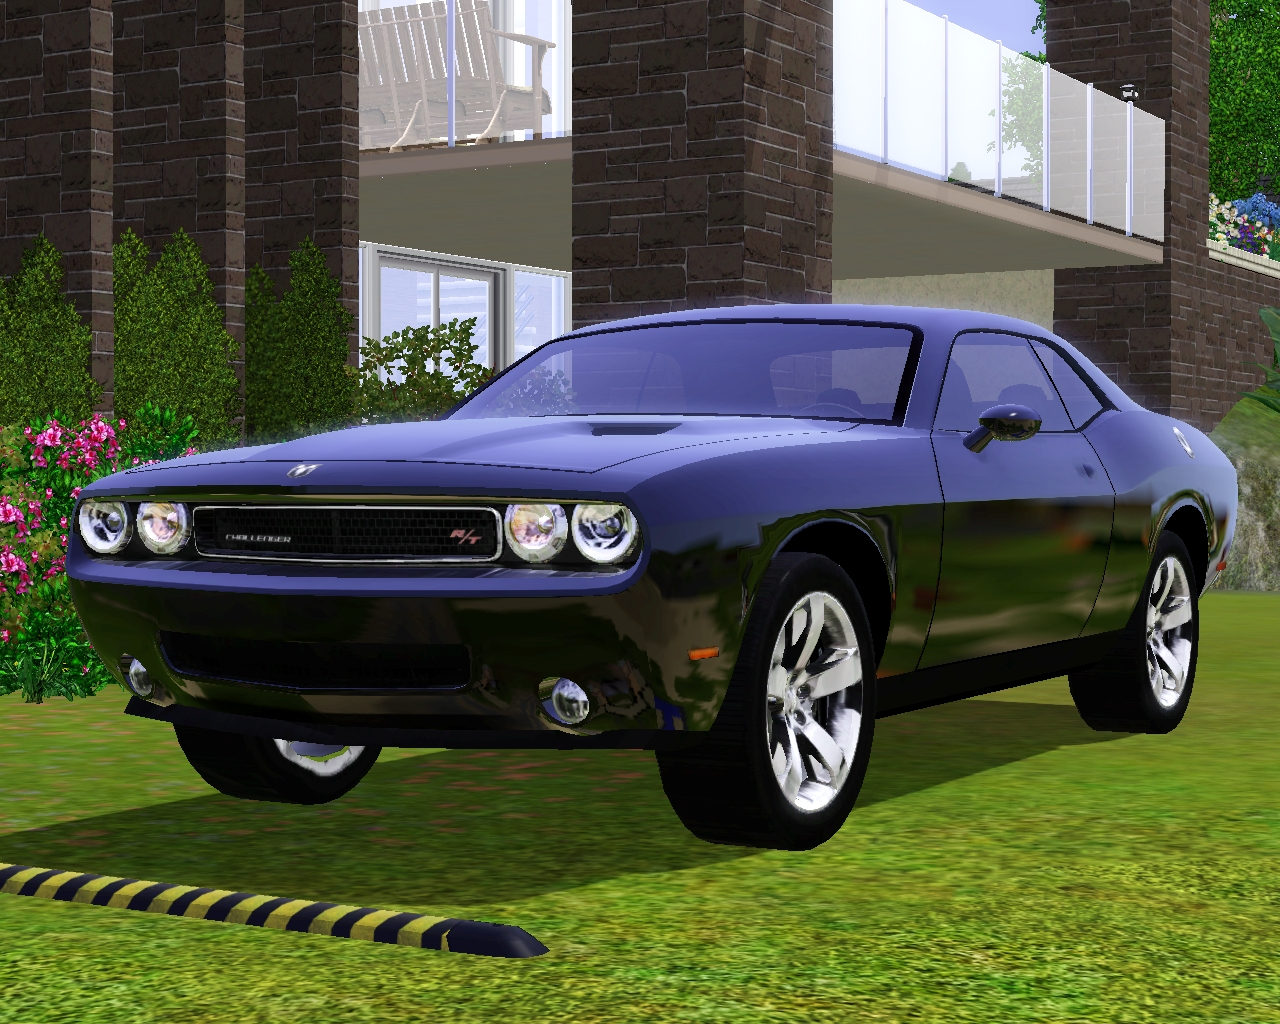 2010 Dodge Challenger by Fresh-Prince